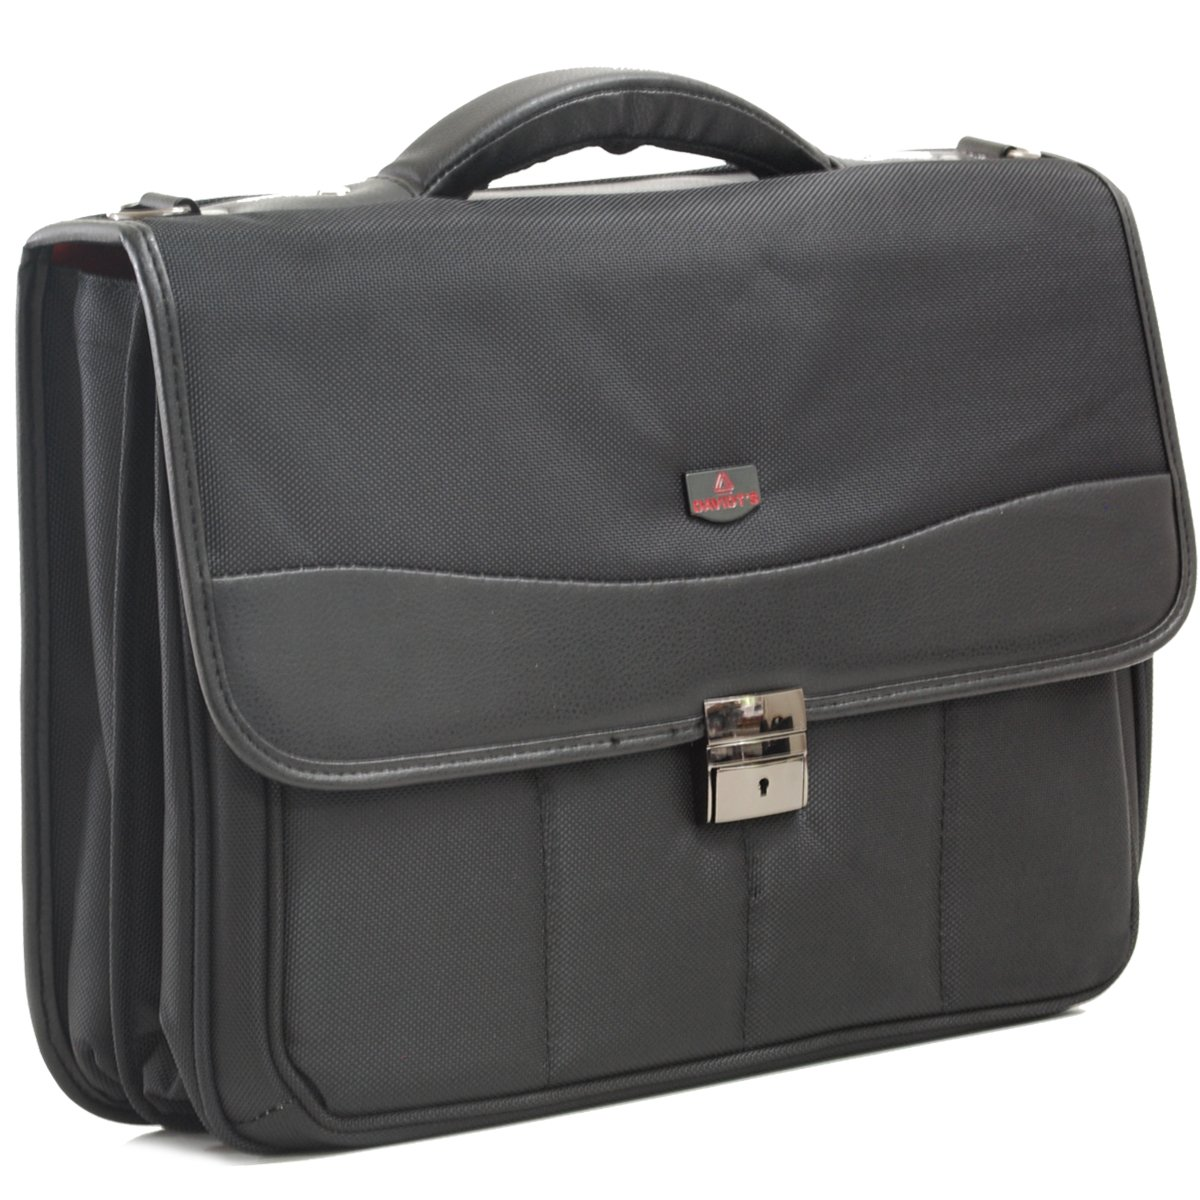 "Cartable + poche-ordinateur 15 "" DAVIDT'S - Noir"